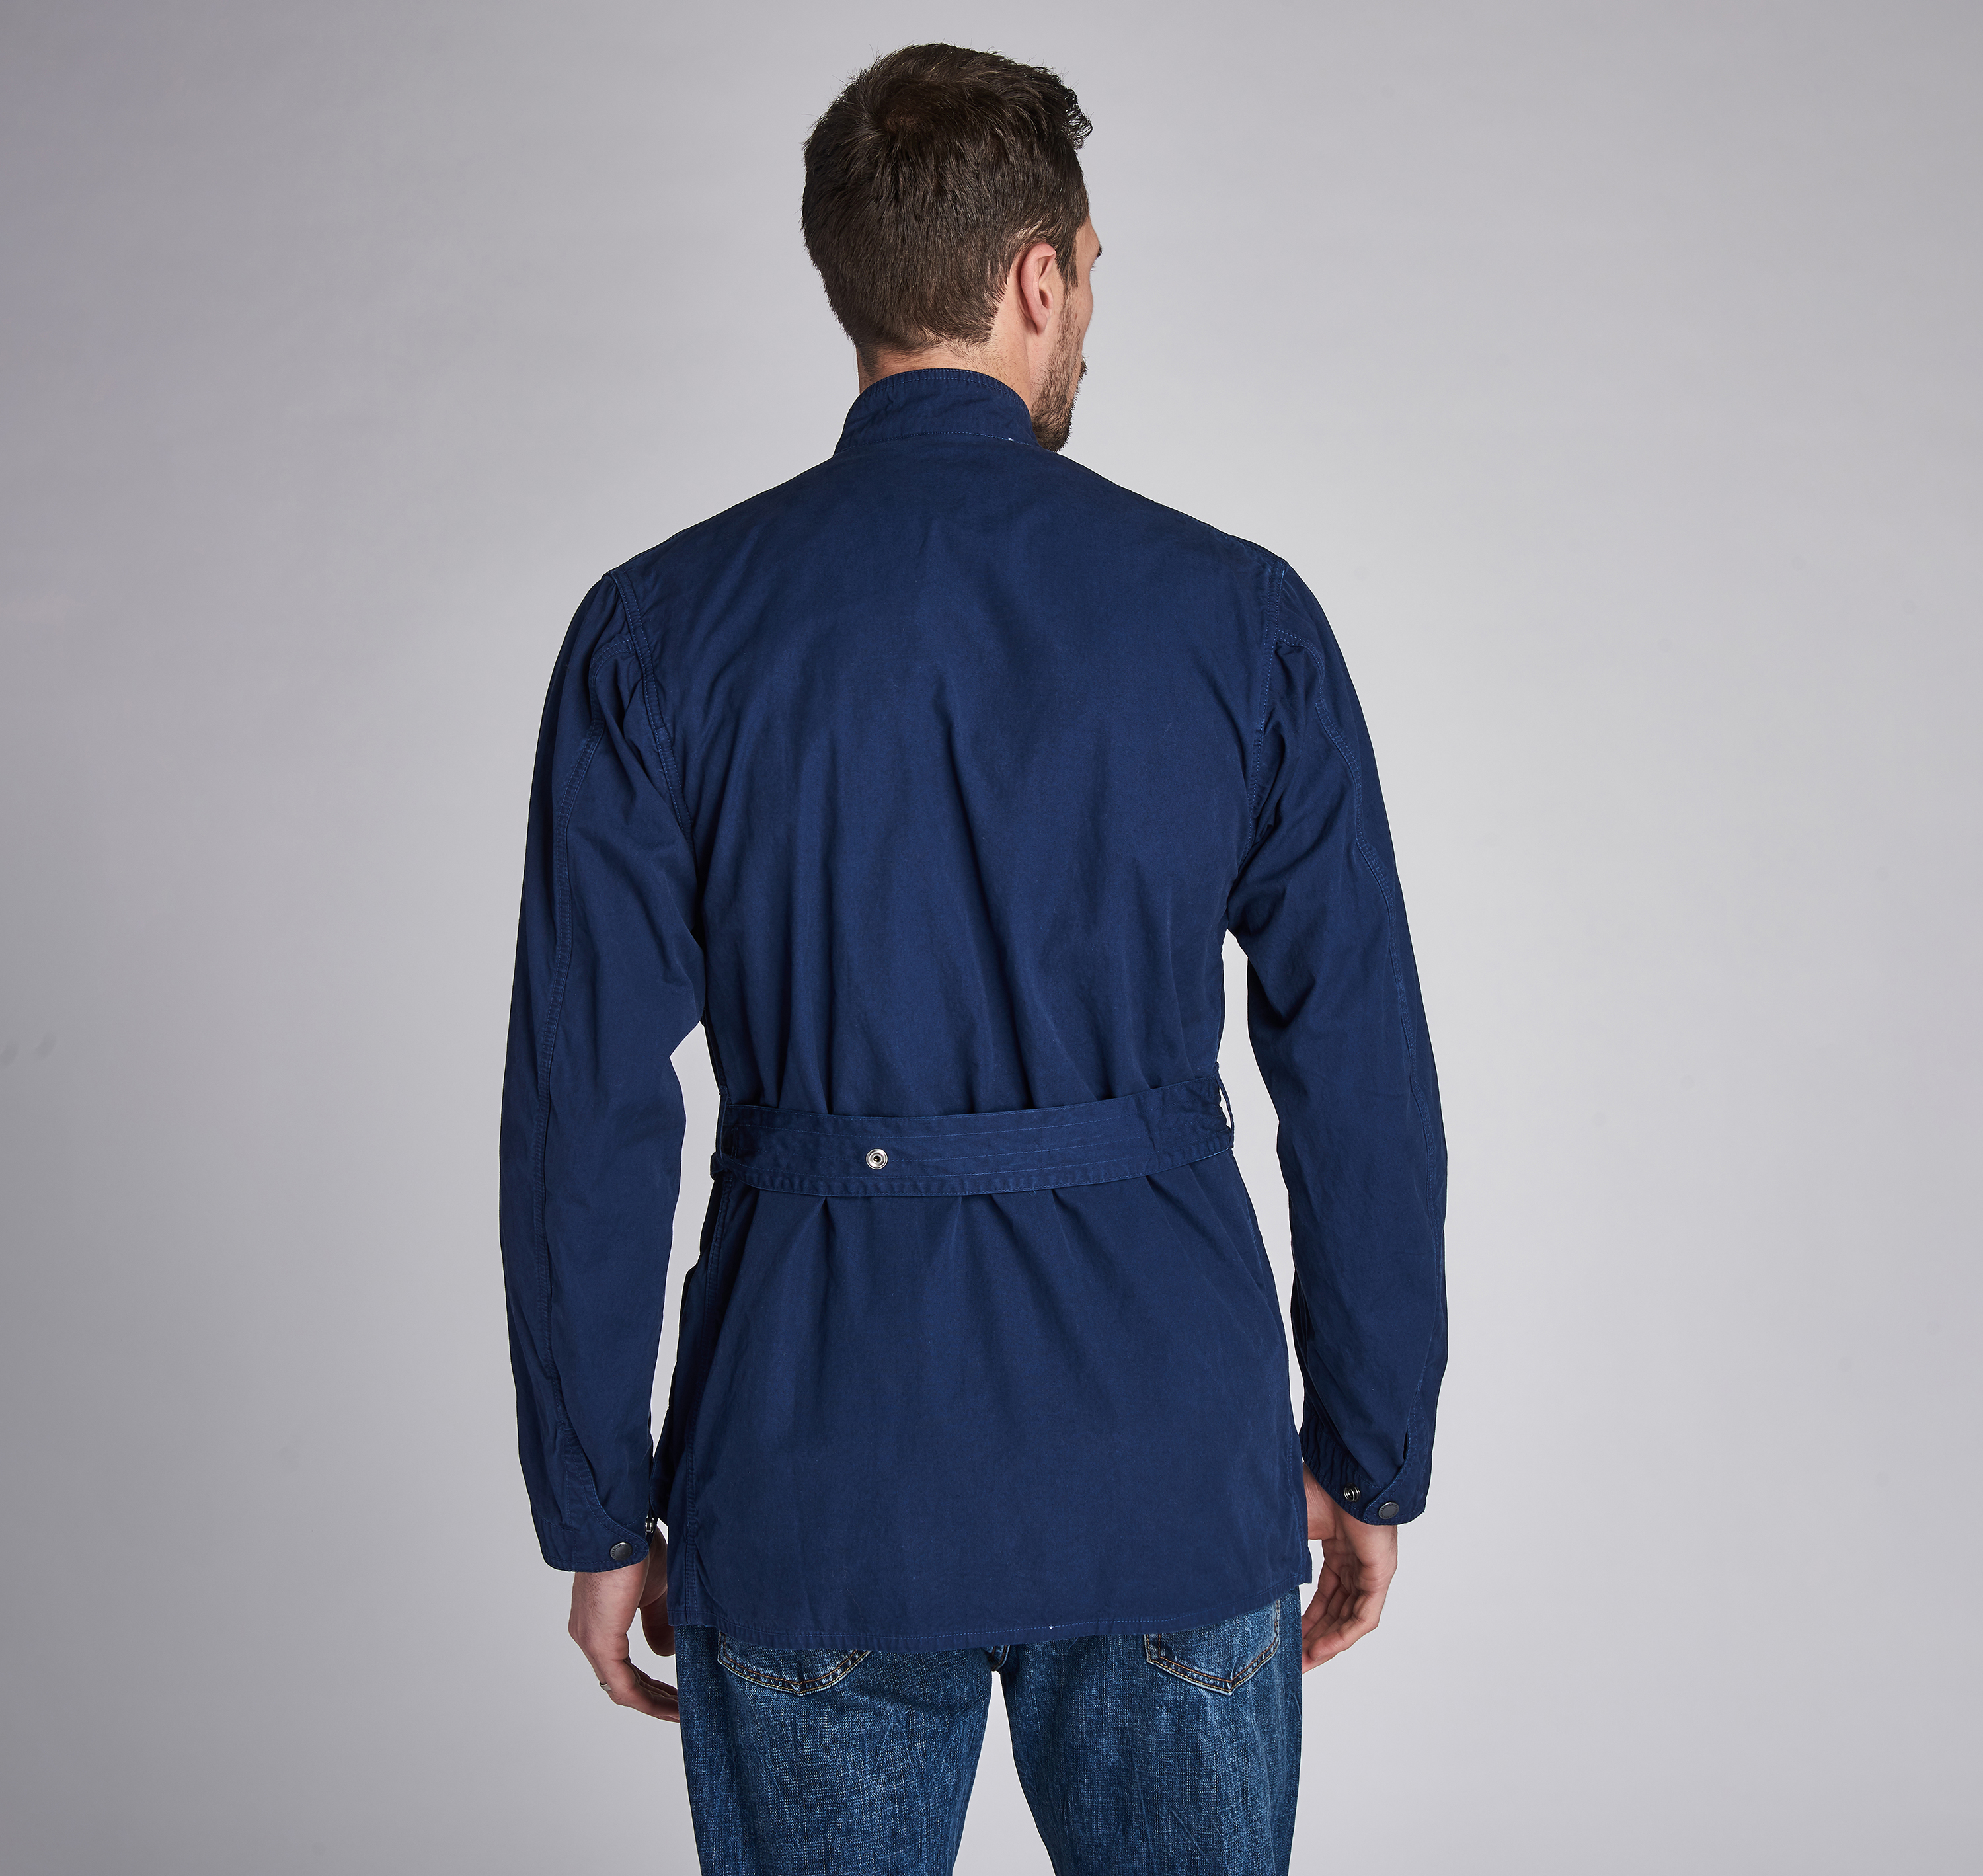 B. Intl. Coloured A7 Casual Jacket Navy